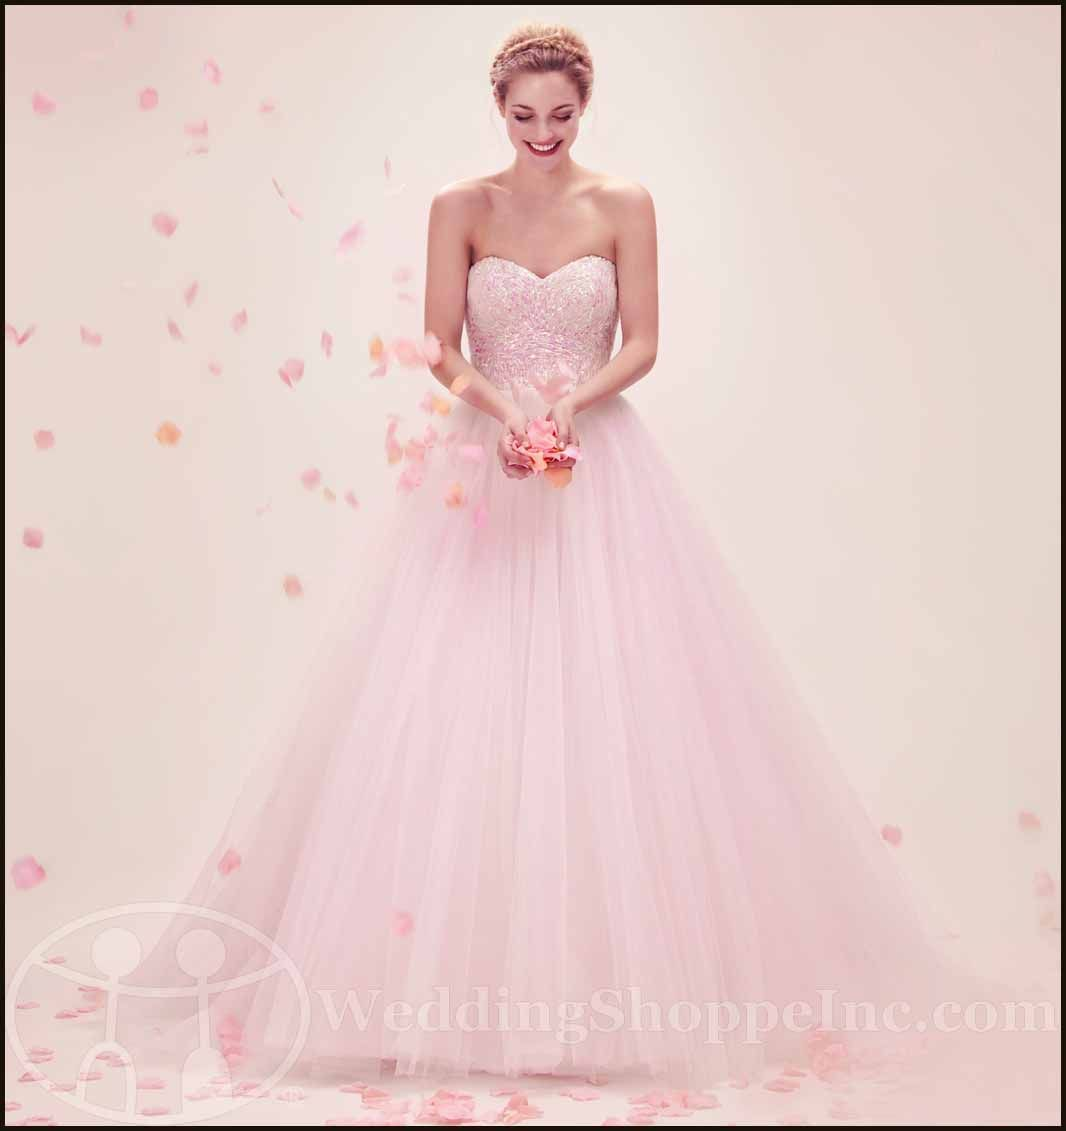 Alita Graham 7708 (Alita Graham 3223363) - From Kleinfeld Bridal ...